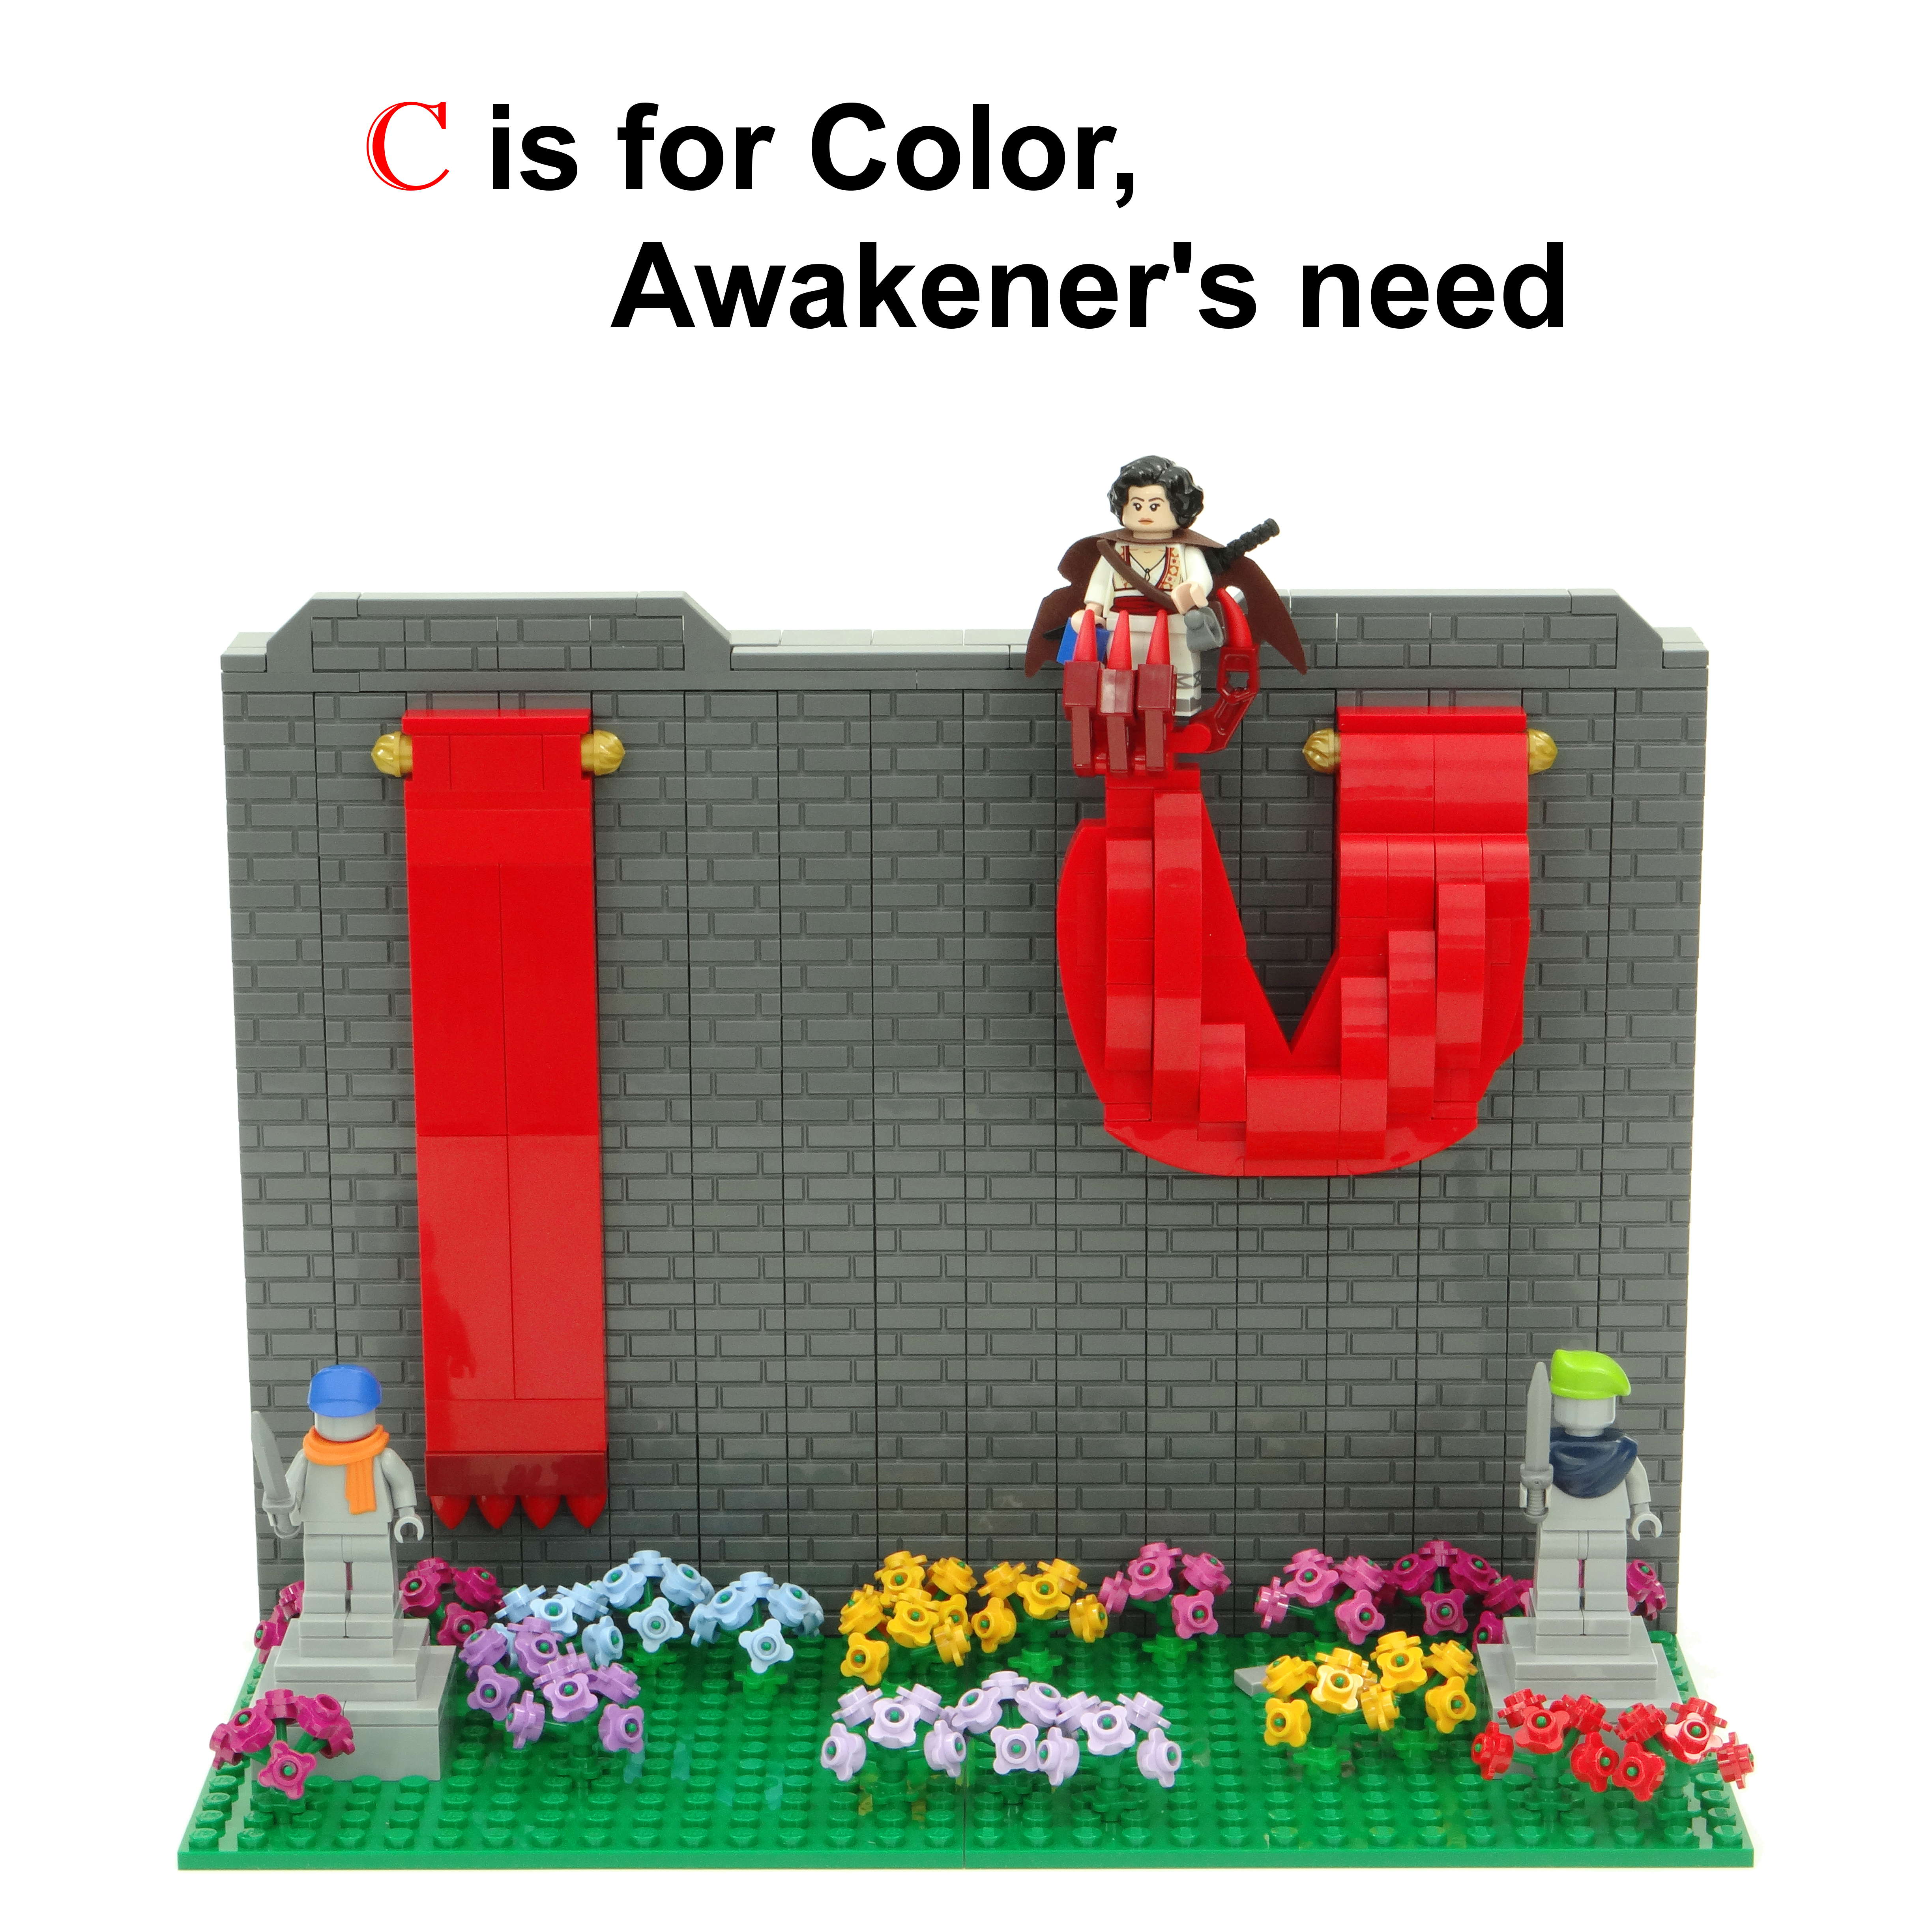 C-is-for-Color